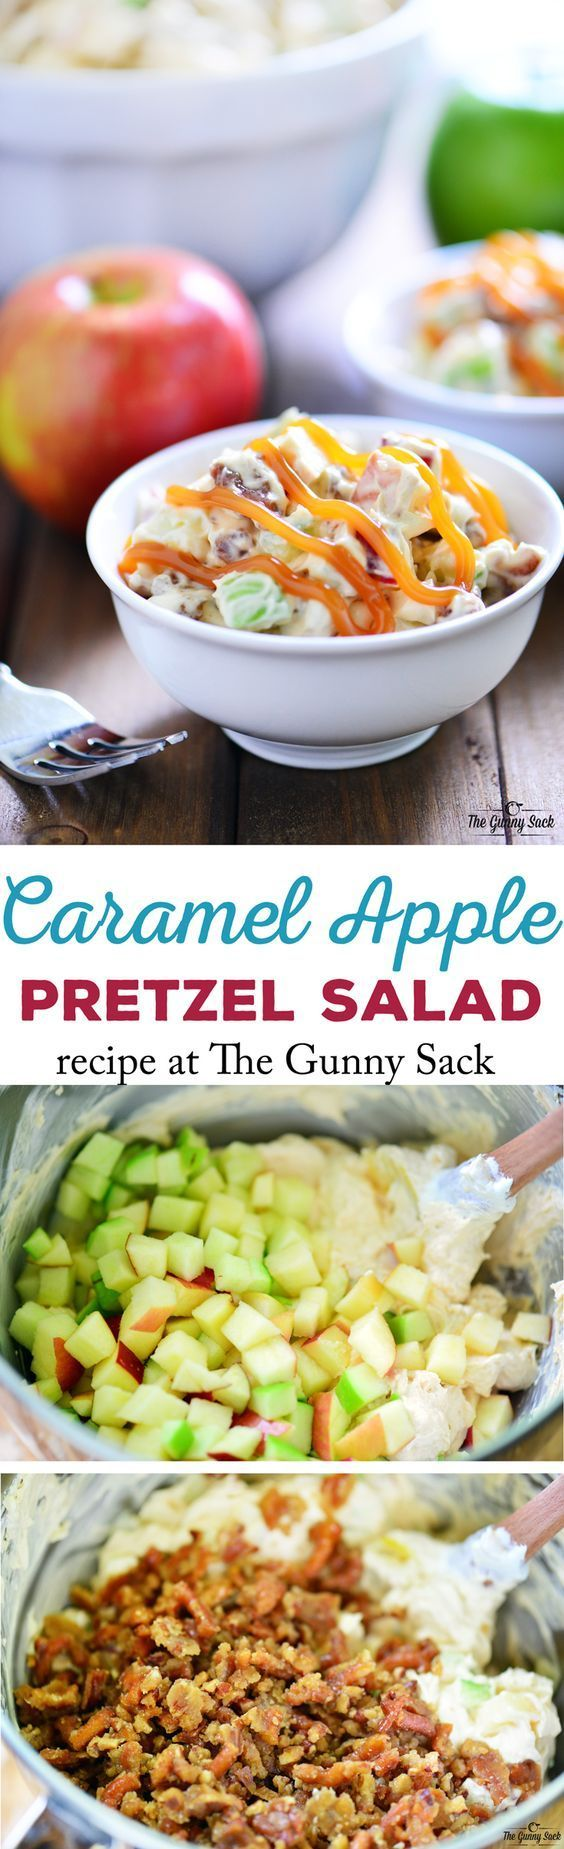 This Caramel Apple Pretzel Salad recipe is a delicious way to enjoy a taste of fall with crunch apples, candied pretzels and sweet caramel sauce.